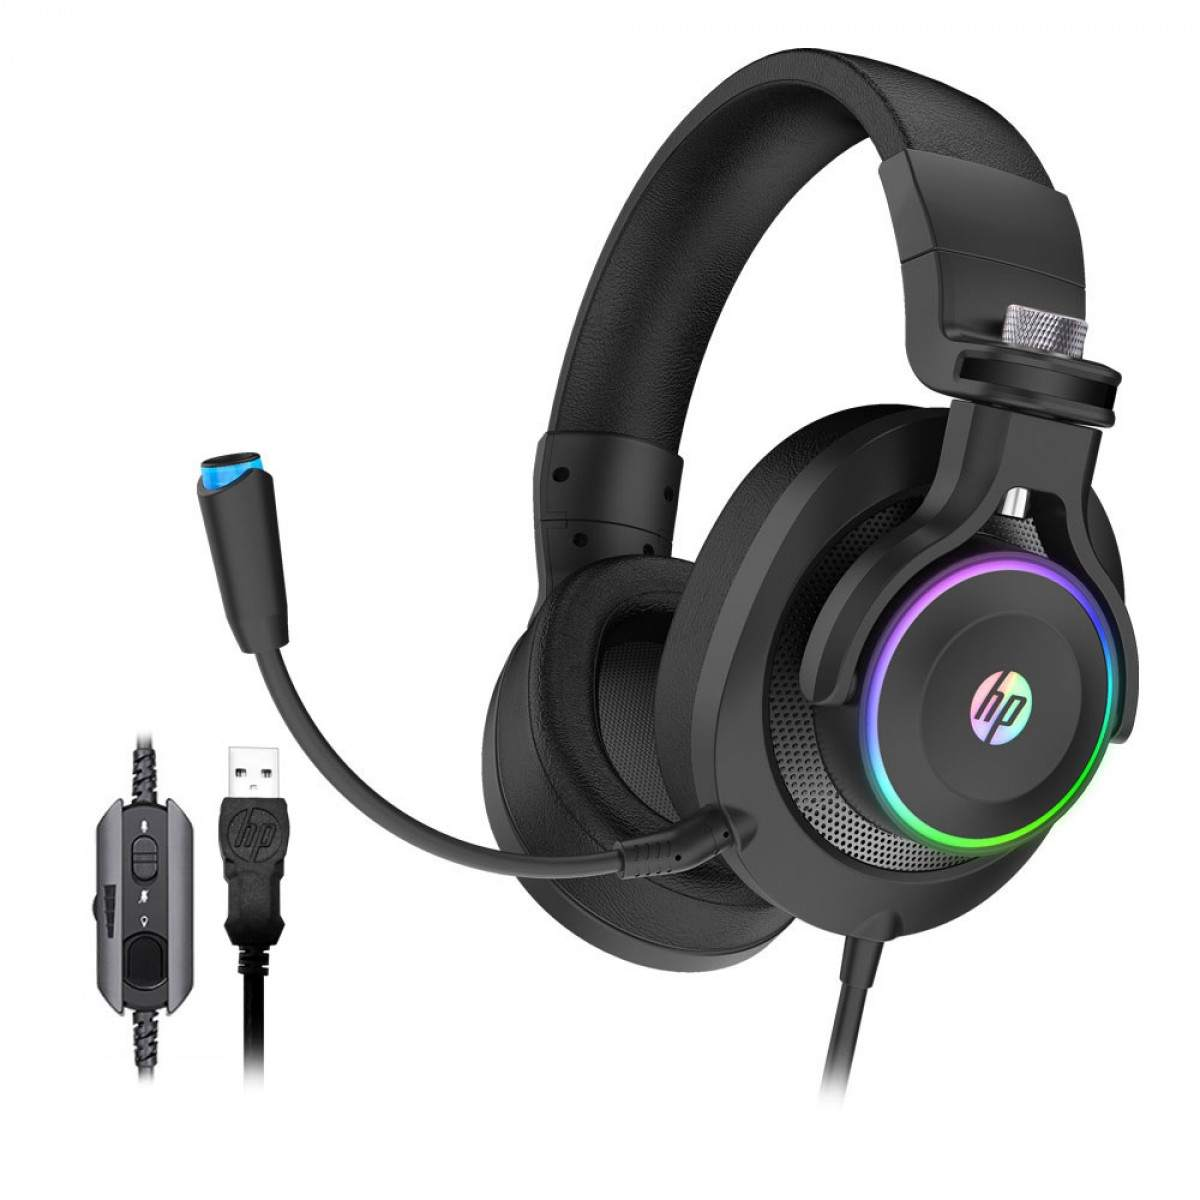 Headset Gamer 7.1 Surround Com Vibração RGB USB Preto HP H500GS